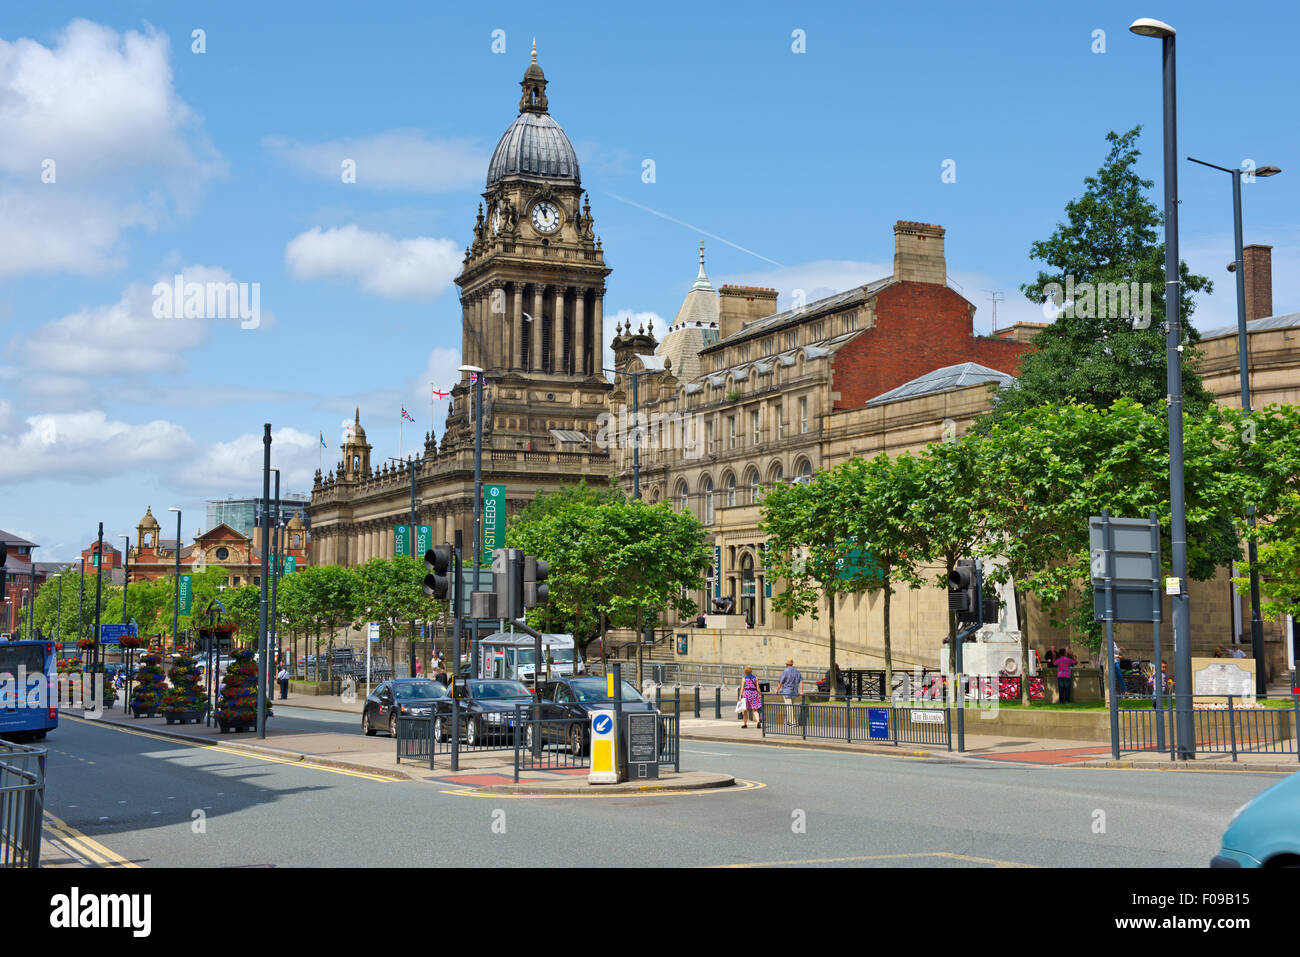 Leeds Town Hall, Central Library and Art Gallery, Victoria Square, The Headrow, UK - Stock Image